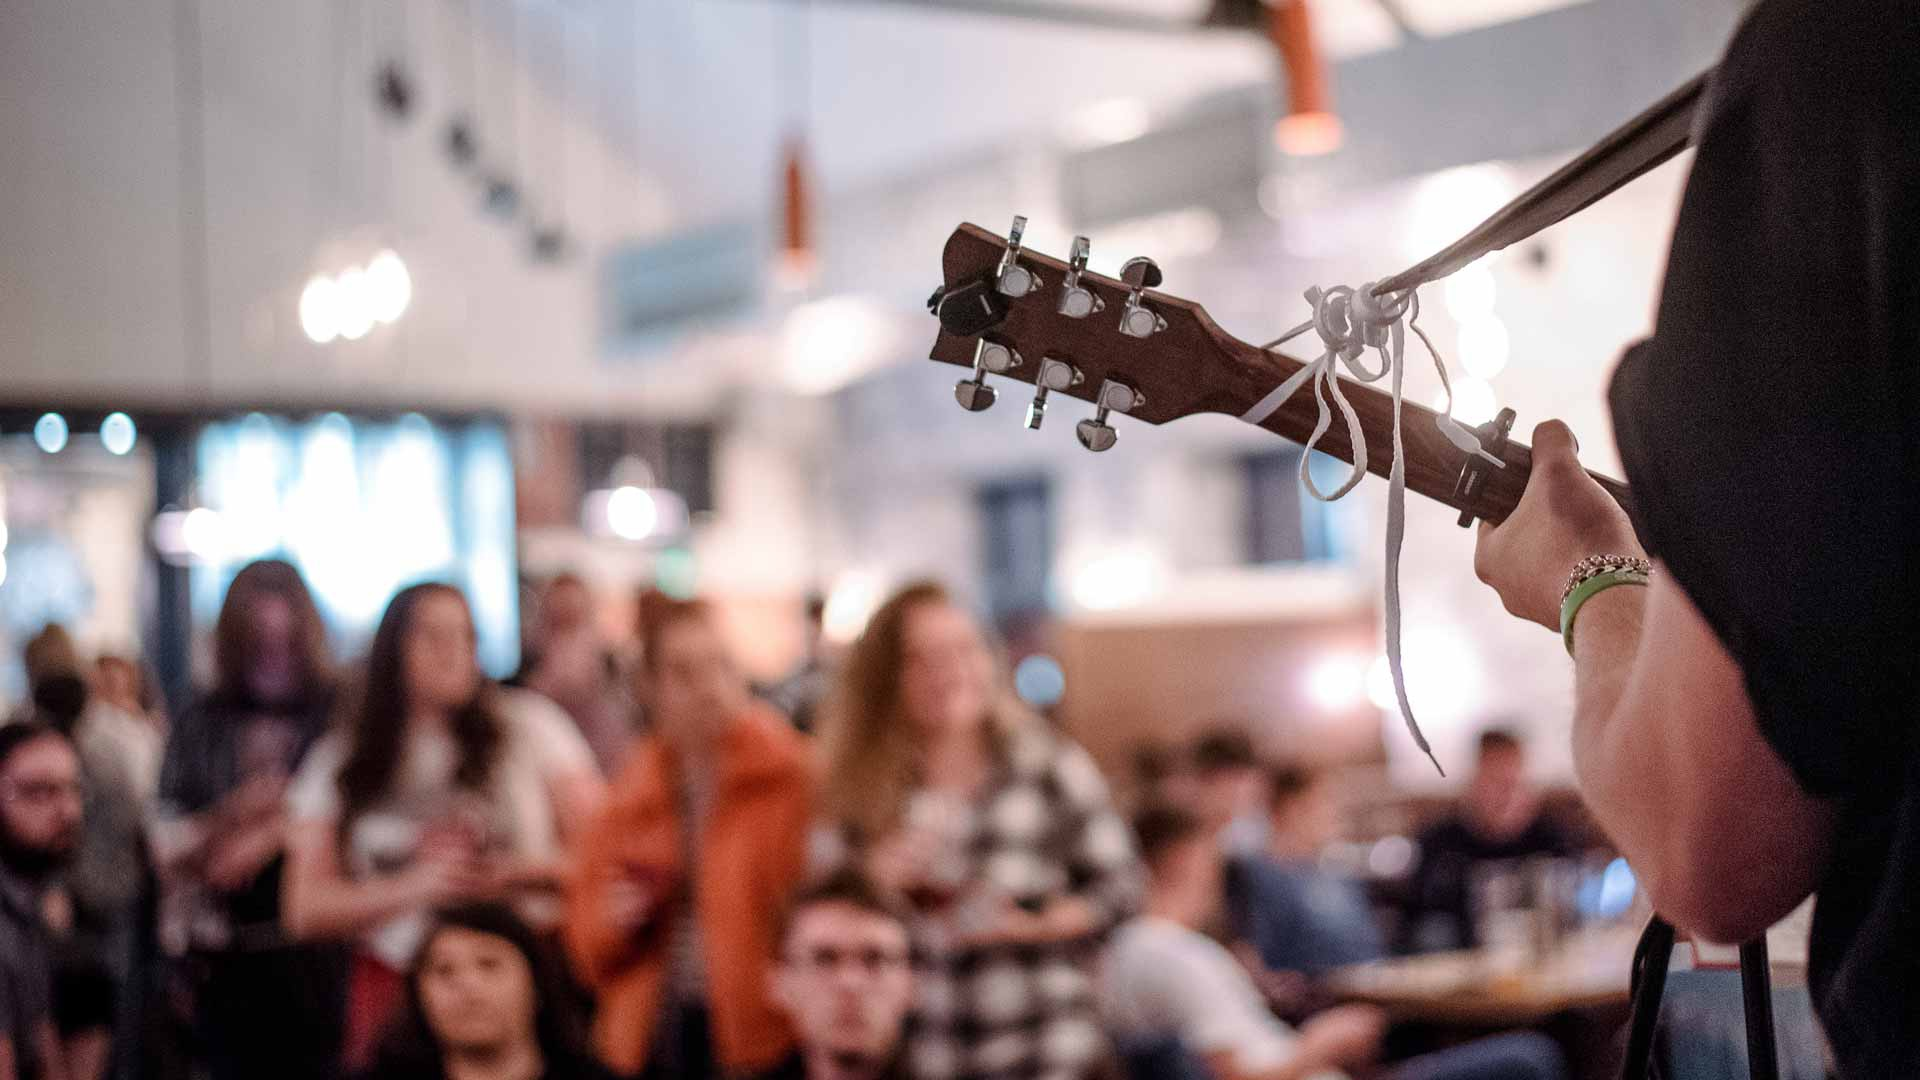 Students listening to live music in the Students' Union